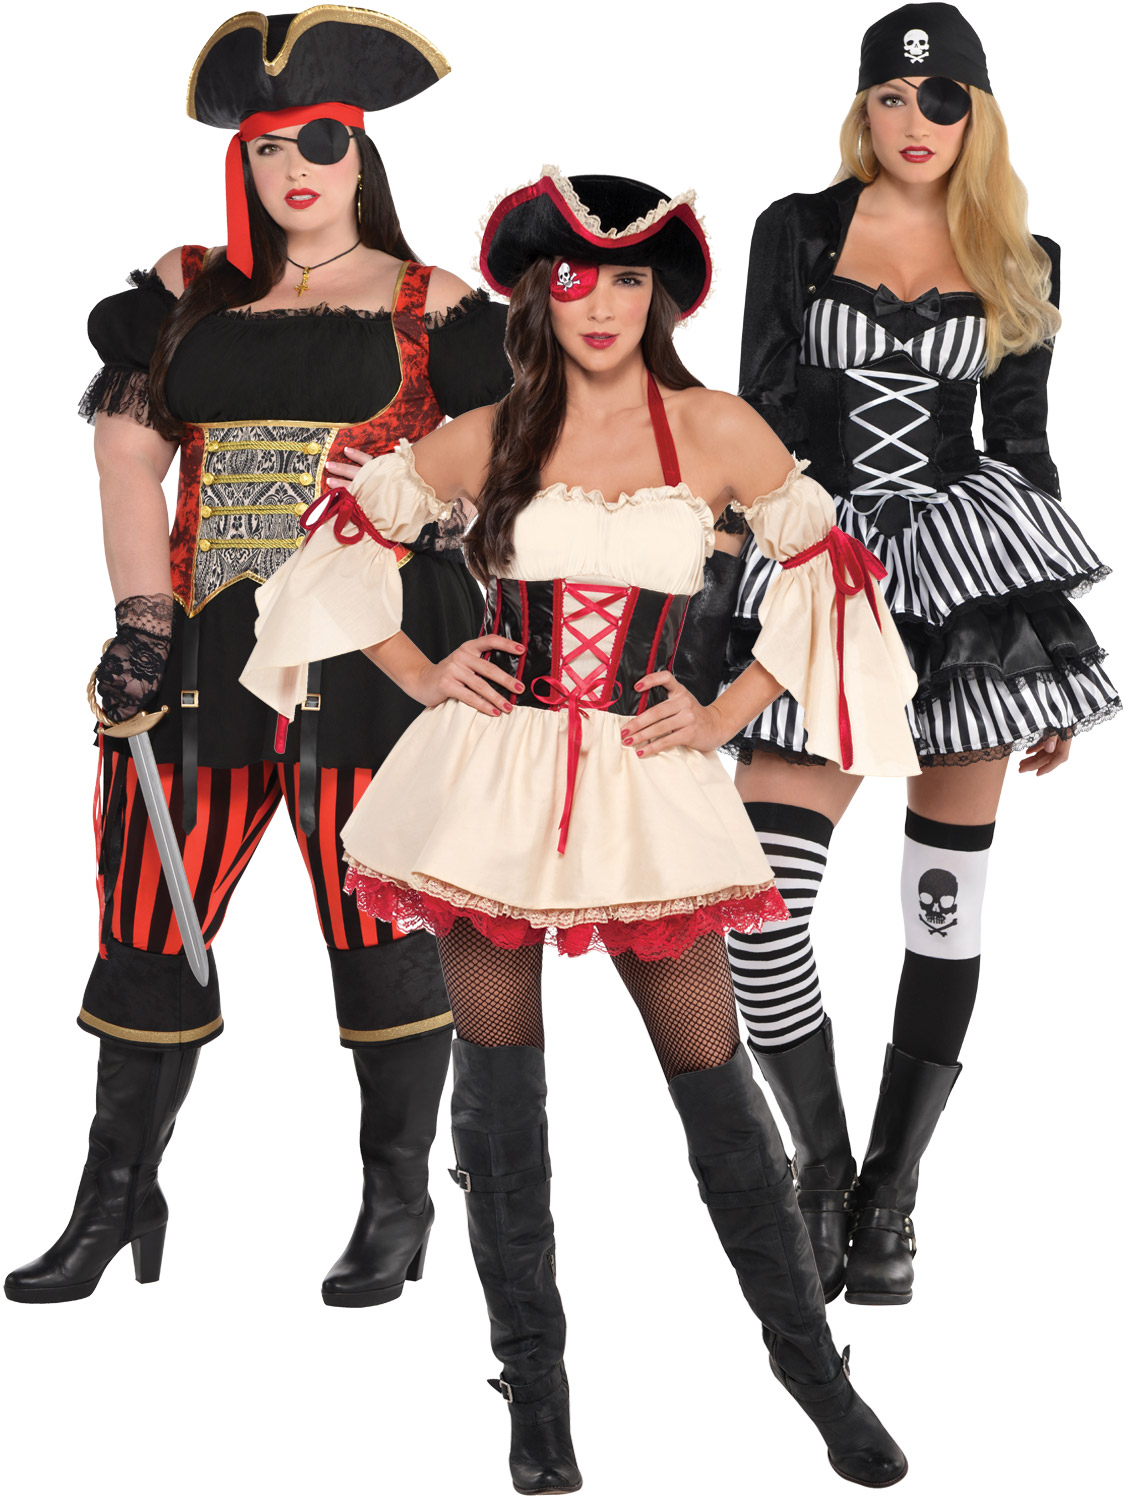 Ladies pirate costume adults captain buccaneer fancy dress halloween transform yourself into a pirate of the seven seas with these fantastic ladies pirate outfits ideal for a themed party solutioingenieria Images